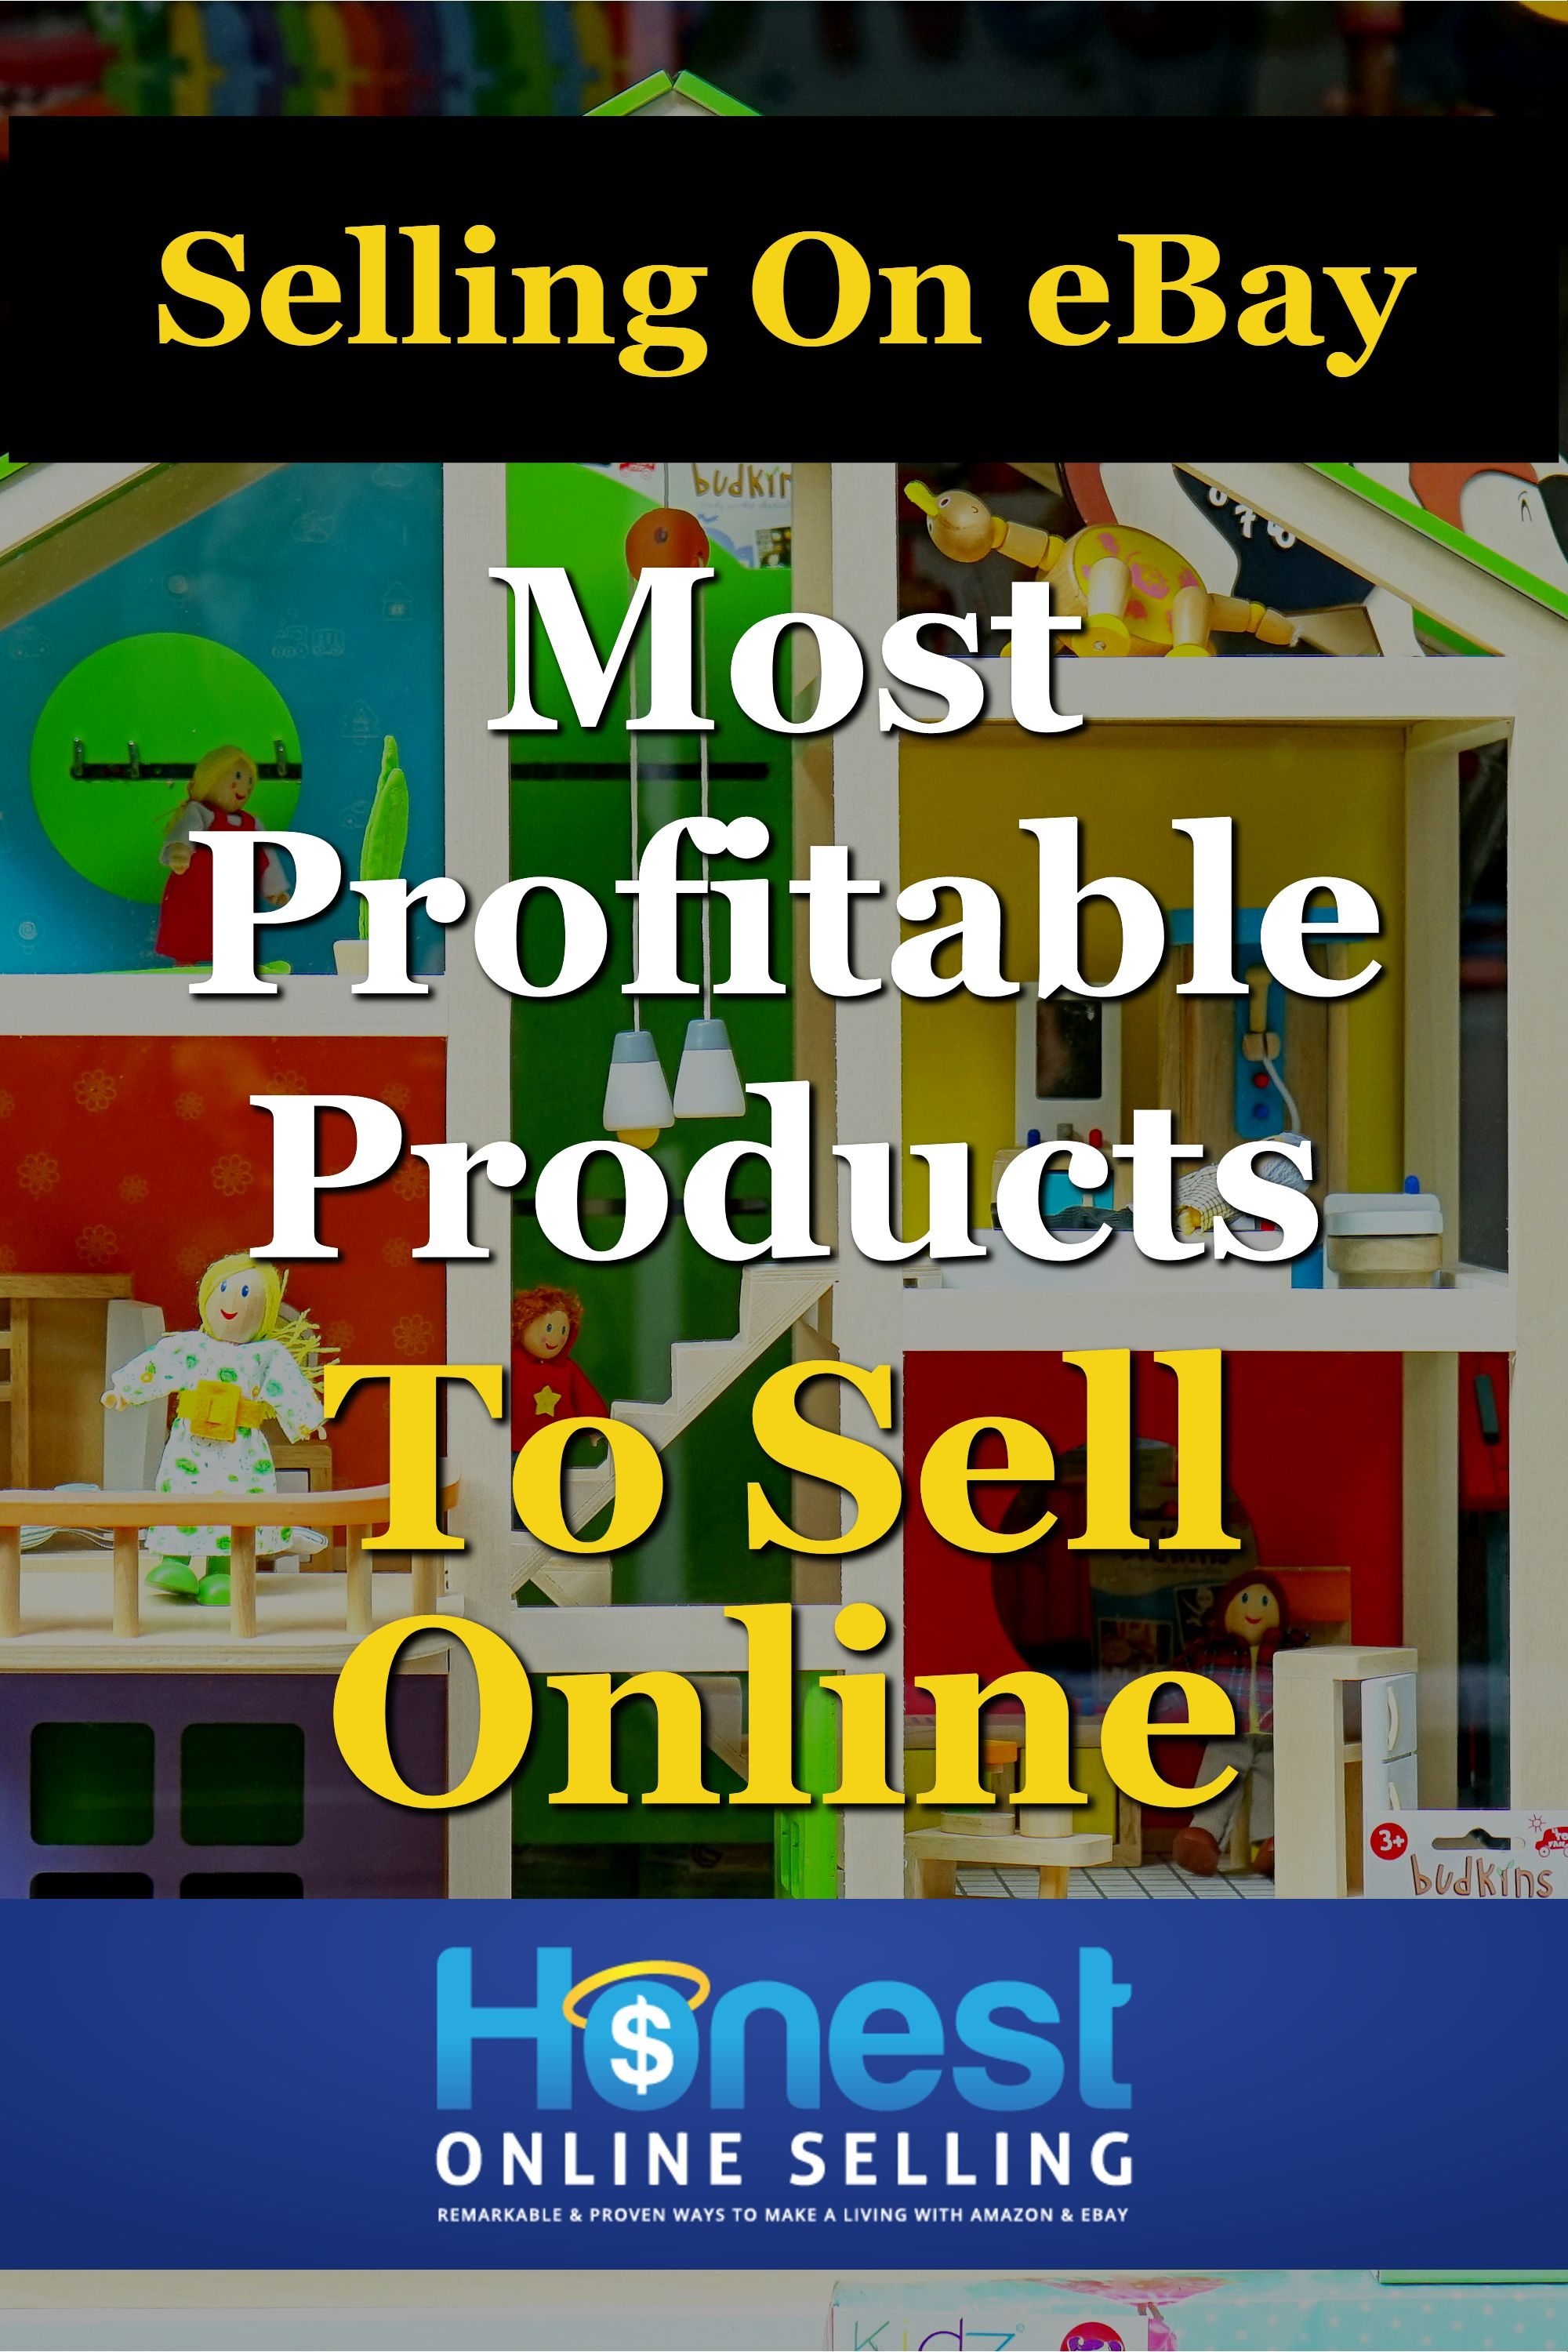 7 Reasons Why Selling Toys On Ebay Is Super Profitable Things To Sell Making Money On Ebay Ebay Business Ideas